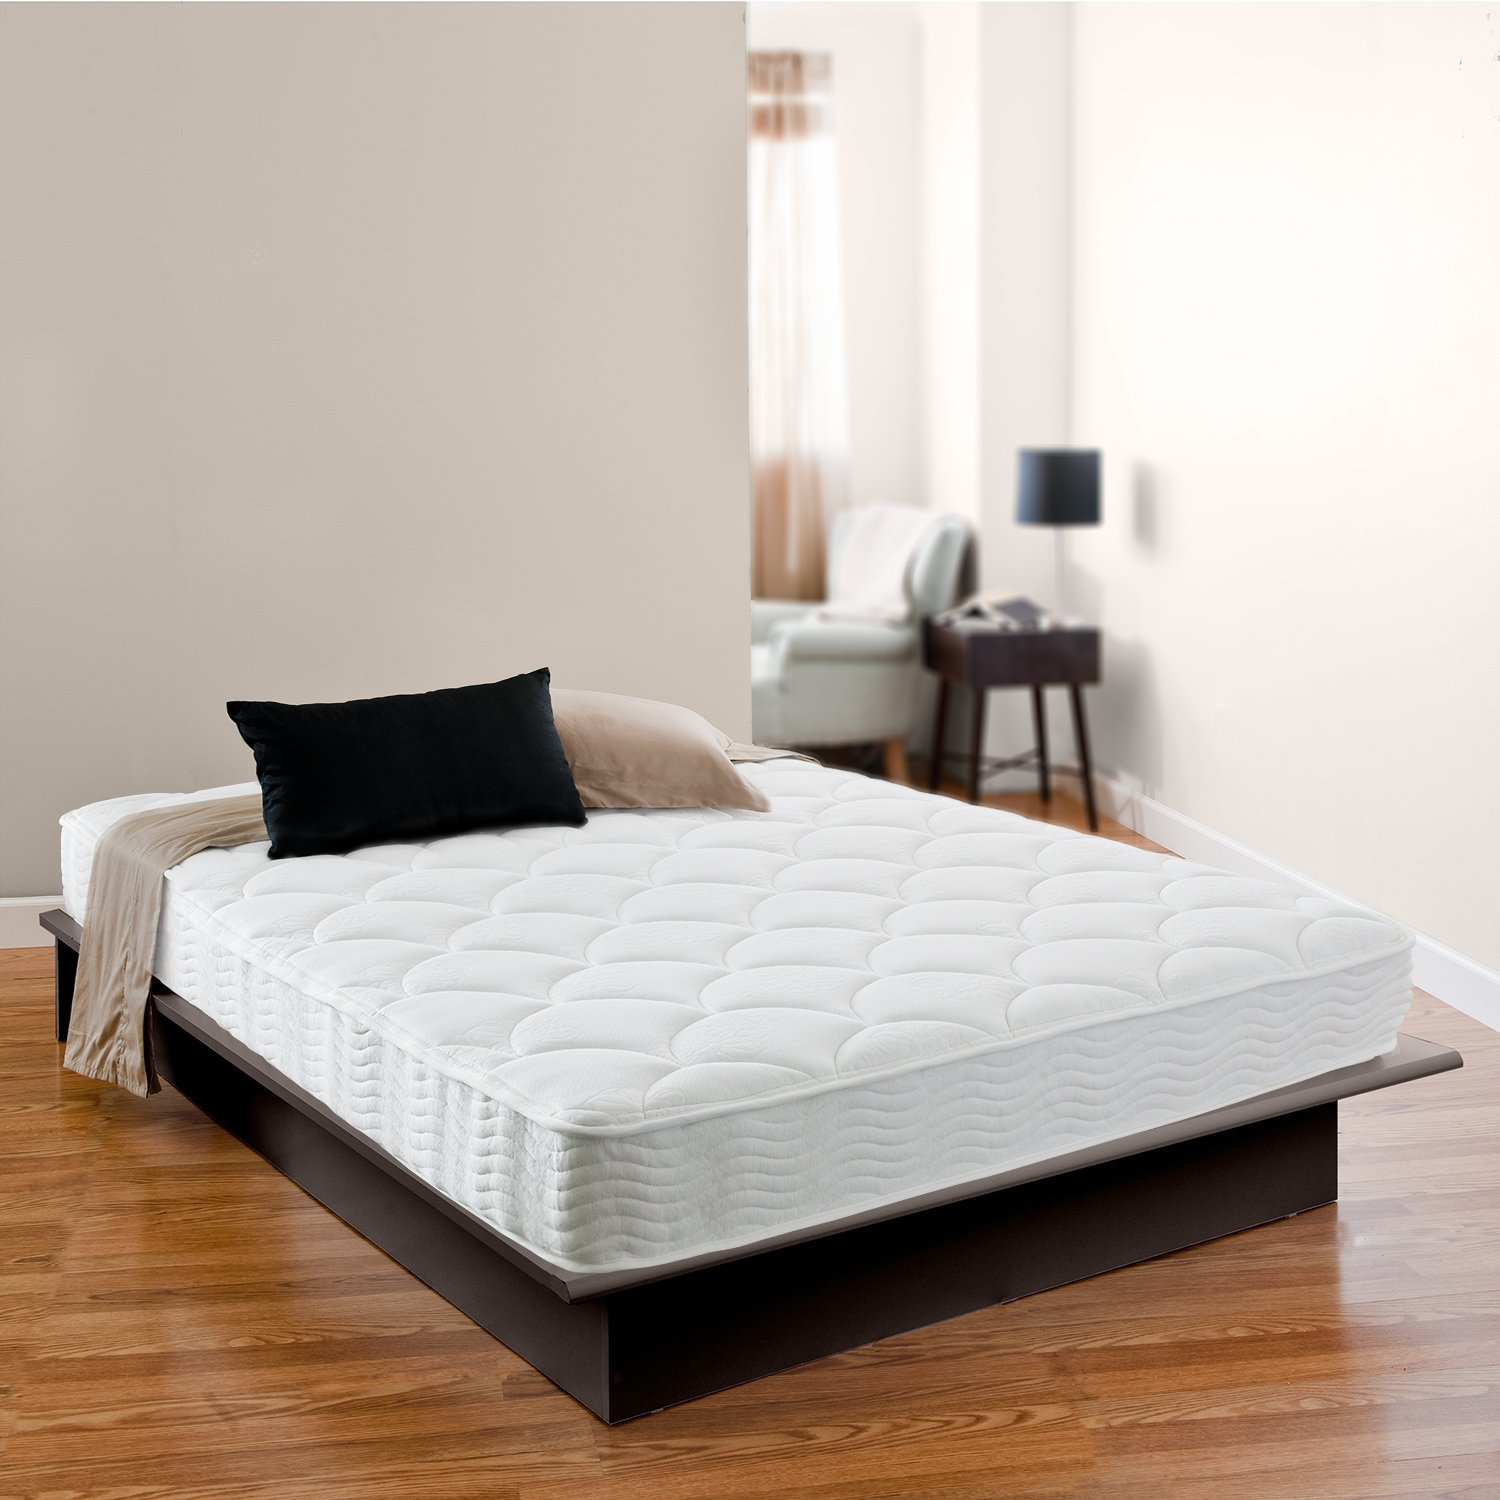 Zinus Night Therapy Spring 8 Inch Premium Mattress Why